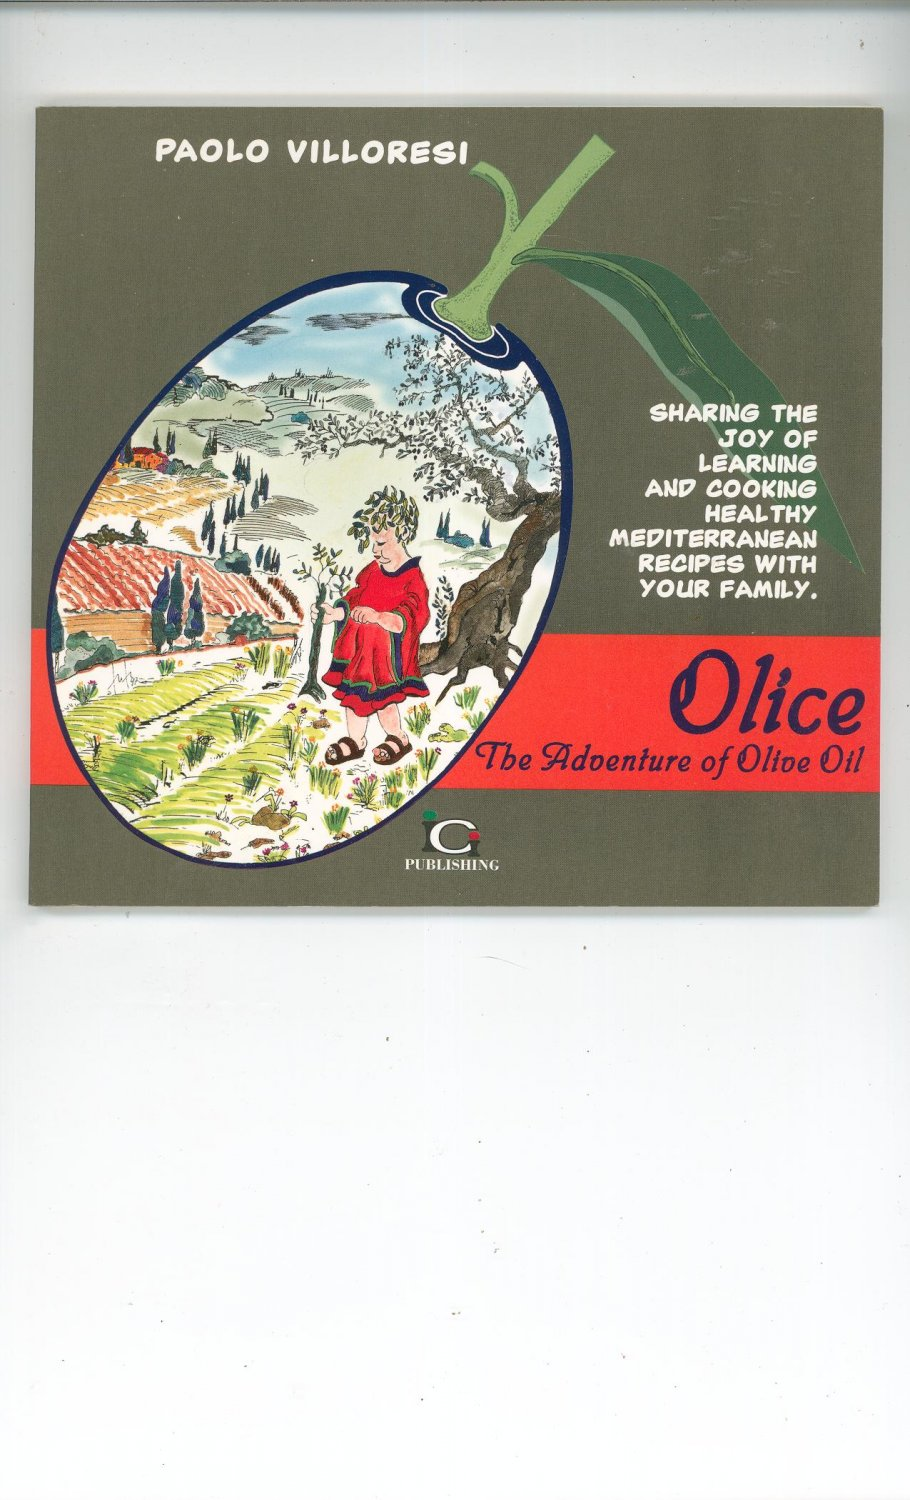 Olice The Adventure Of Olive Oil Cookbook Paolo Villores 1997